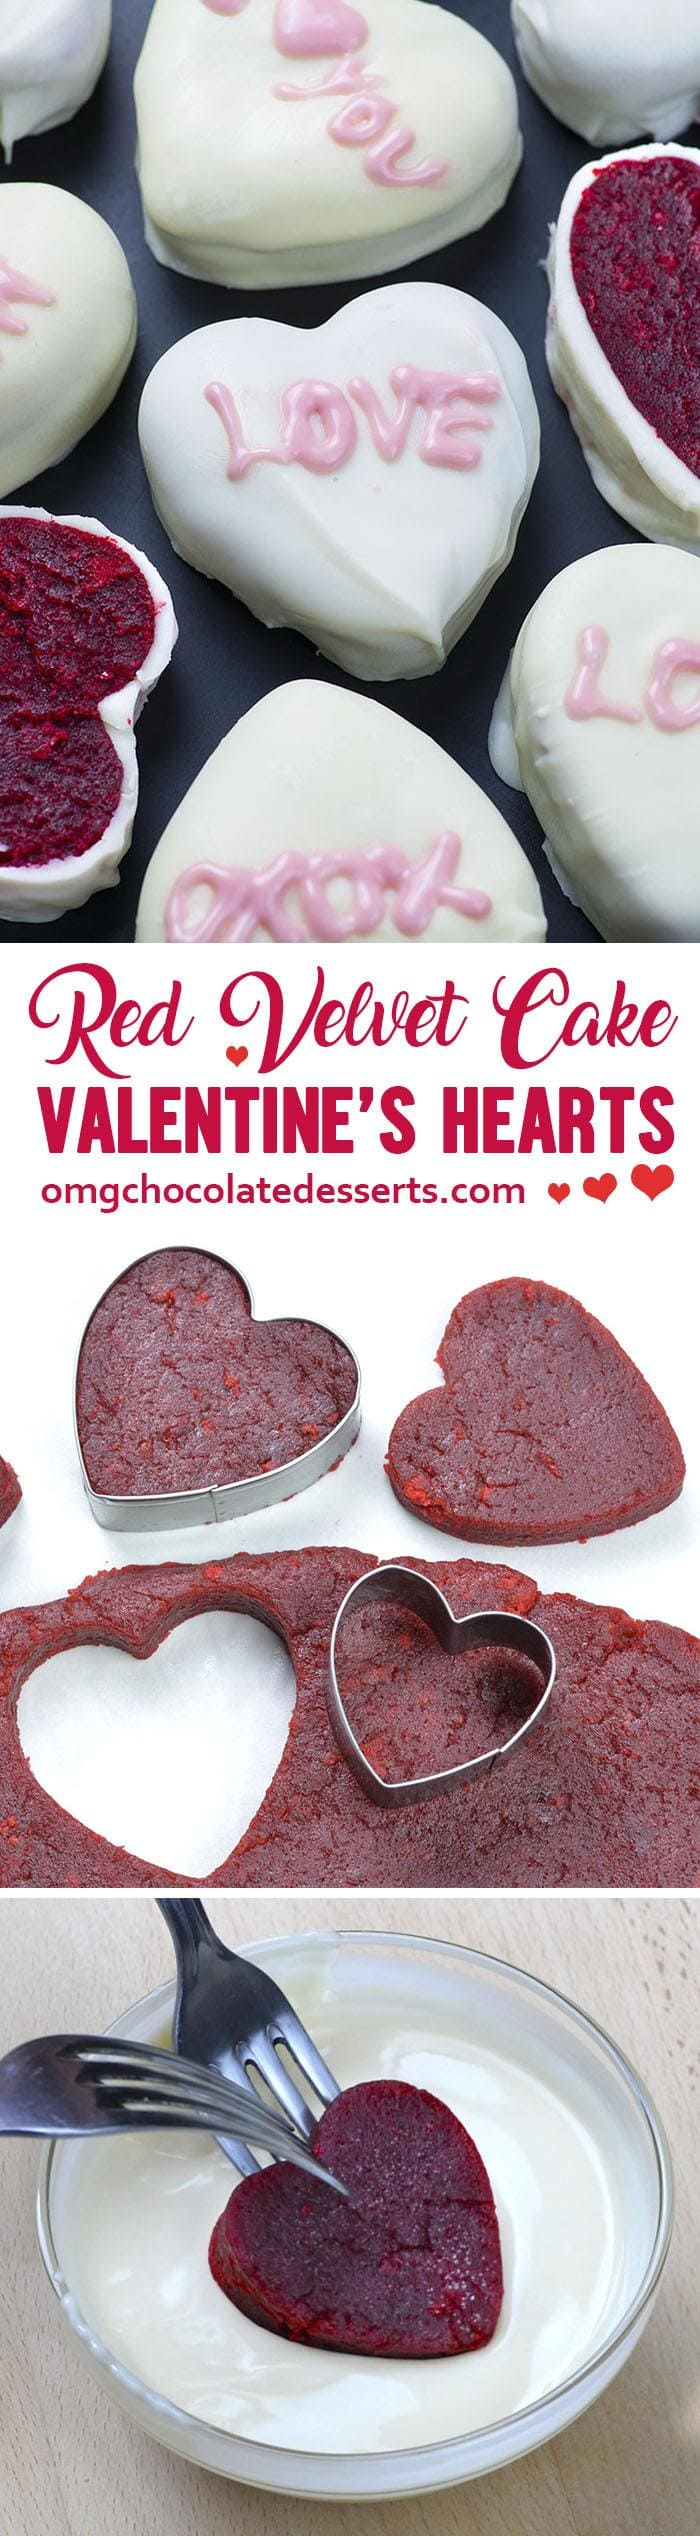 Red Velvet Cake Valentine's Hearts - fun and festive, bite sized treat for Valentine's Day!!! Classic Red Velvet Cake with Cream Cheese Frosting just got a holiday makeover!